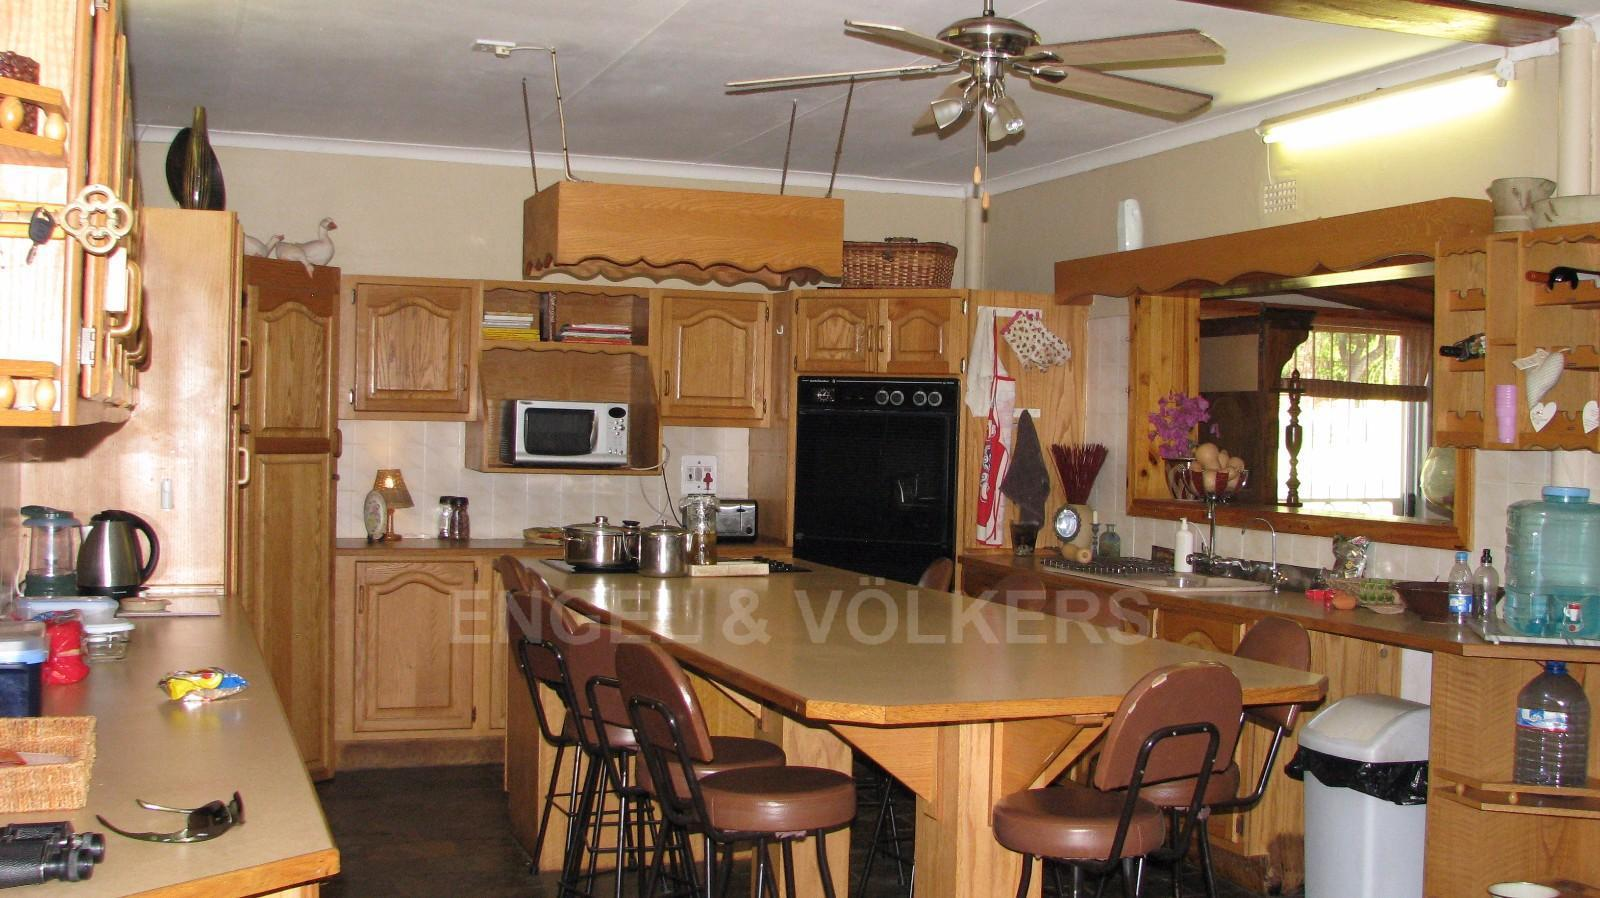 Land in Farms - Farm kitchen with solid oak built-in cupboards